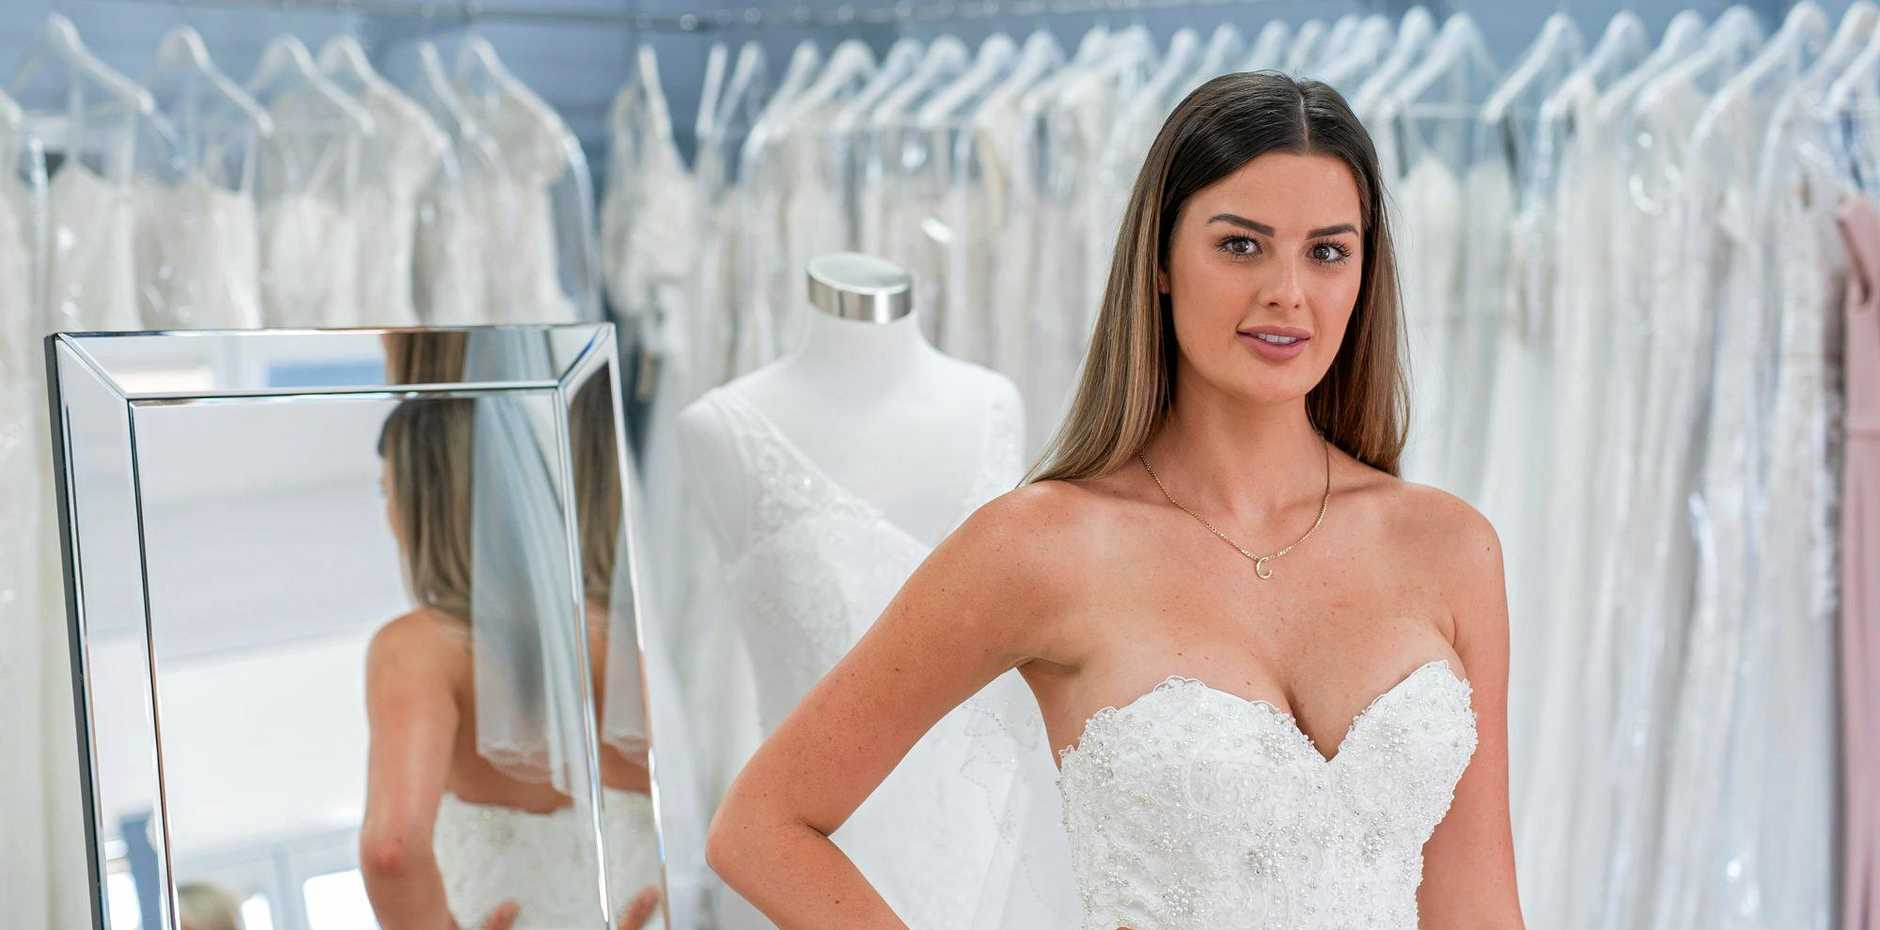 Cheryl shops for her wedding dress in a scene from the TV series Married At First Sight.